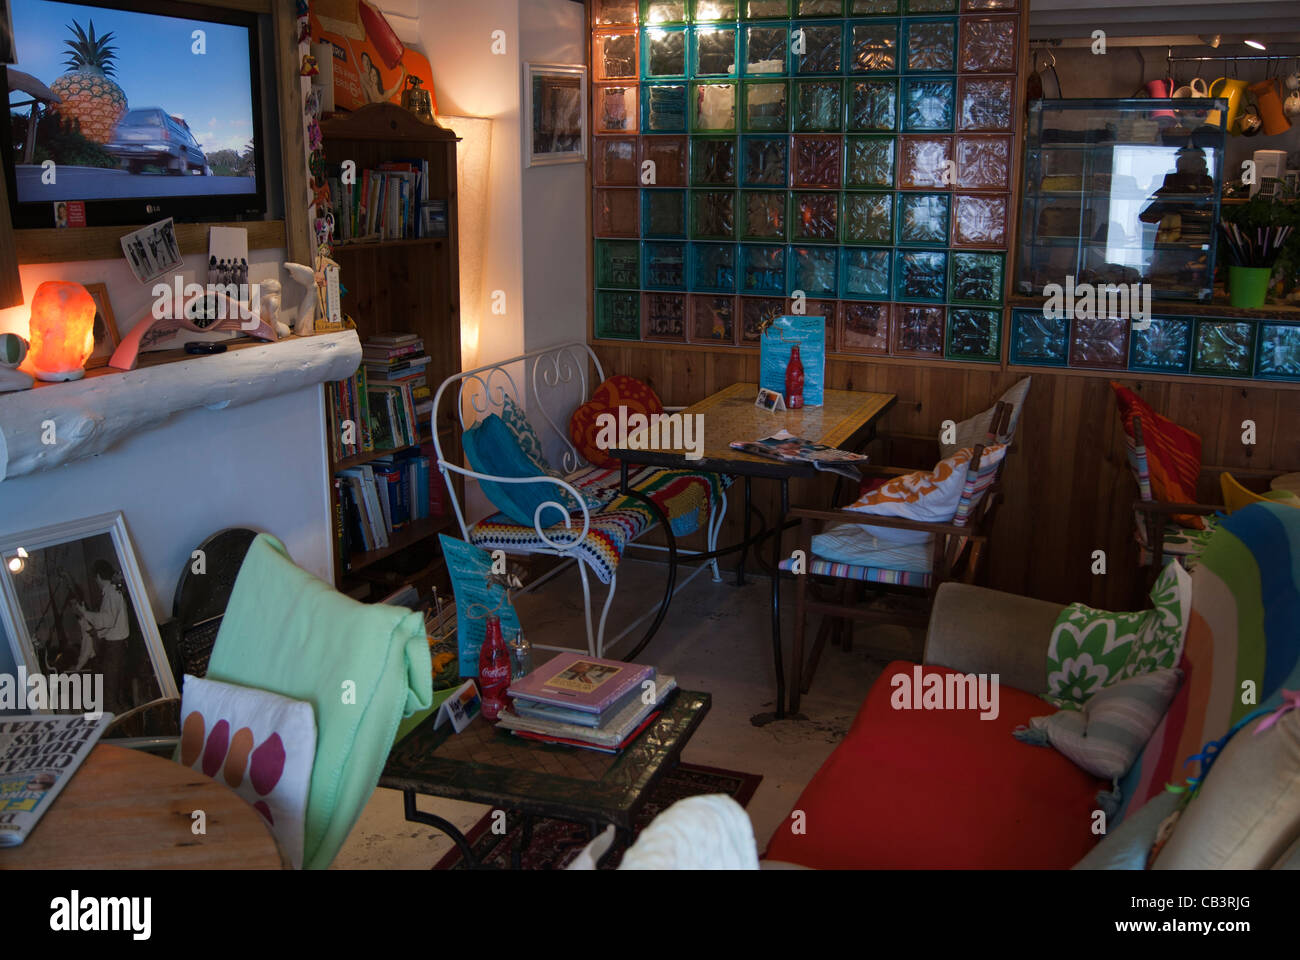 Interior of Pinky Murphy's Cafe in Fowey, Cornwall. - Stock Image